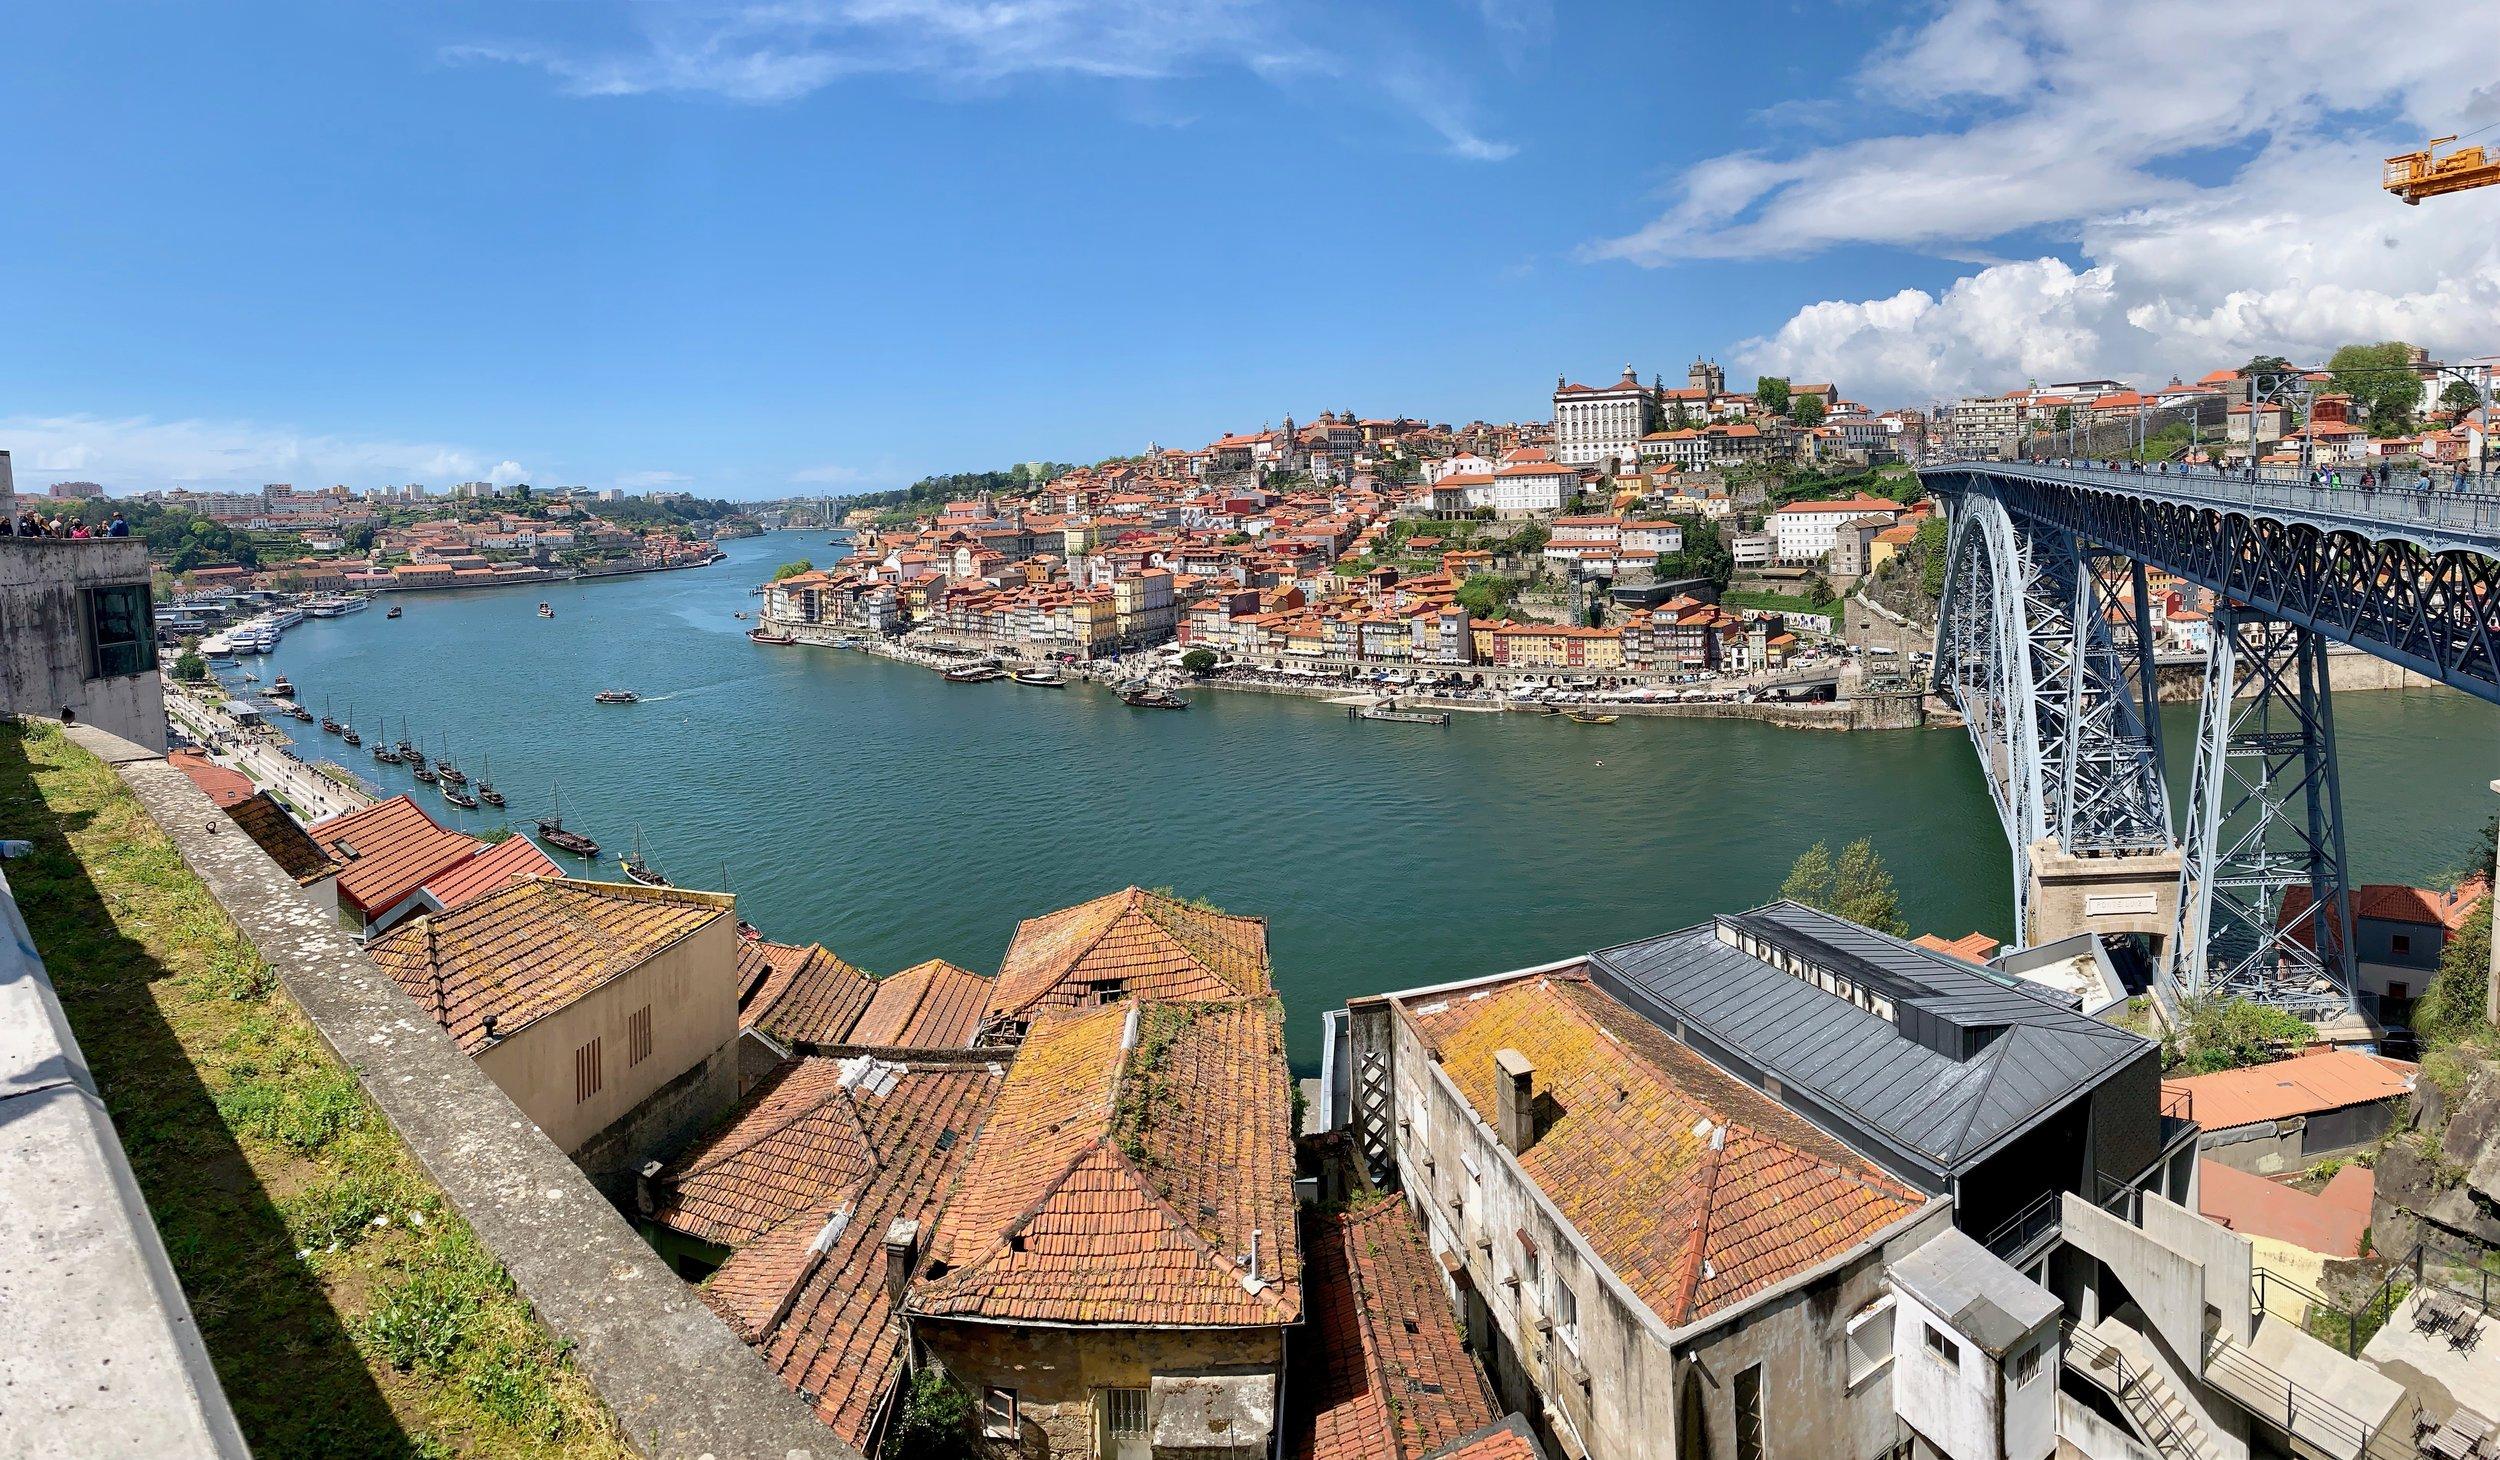 Porto, Portugal at the mouth of the Douro River